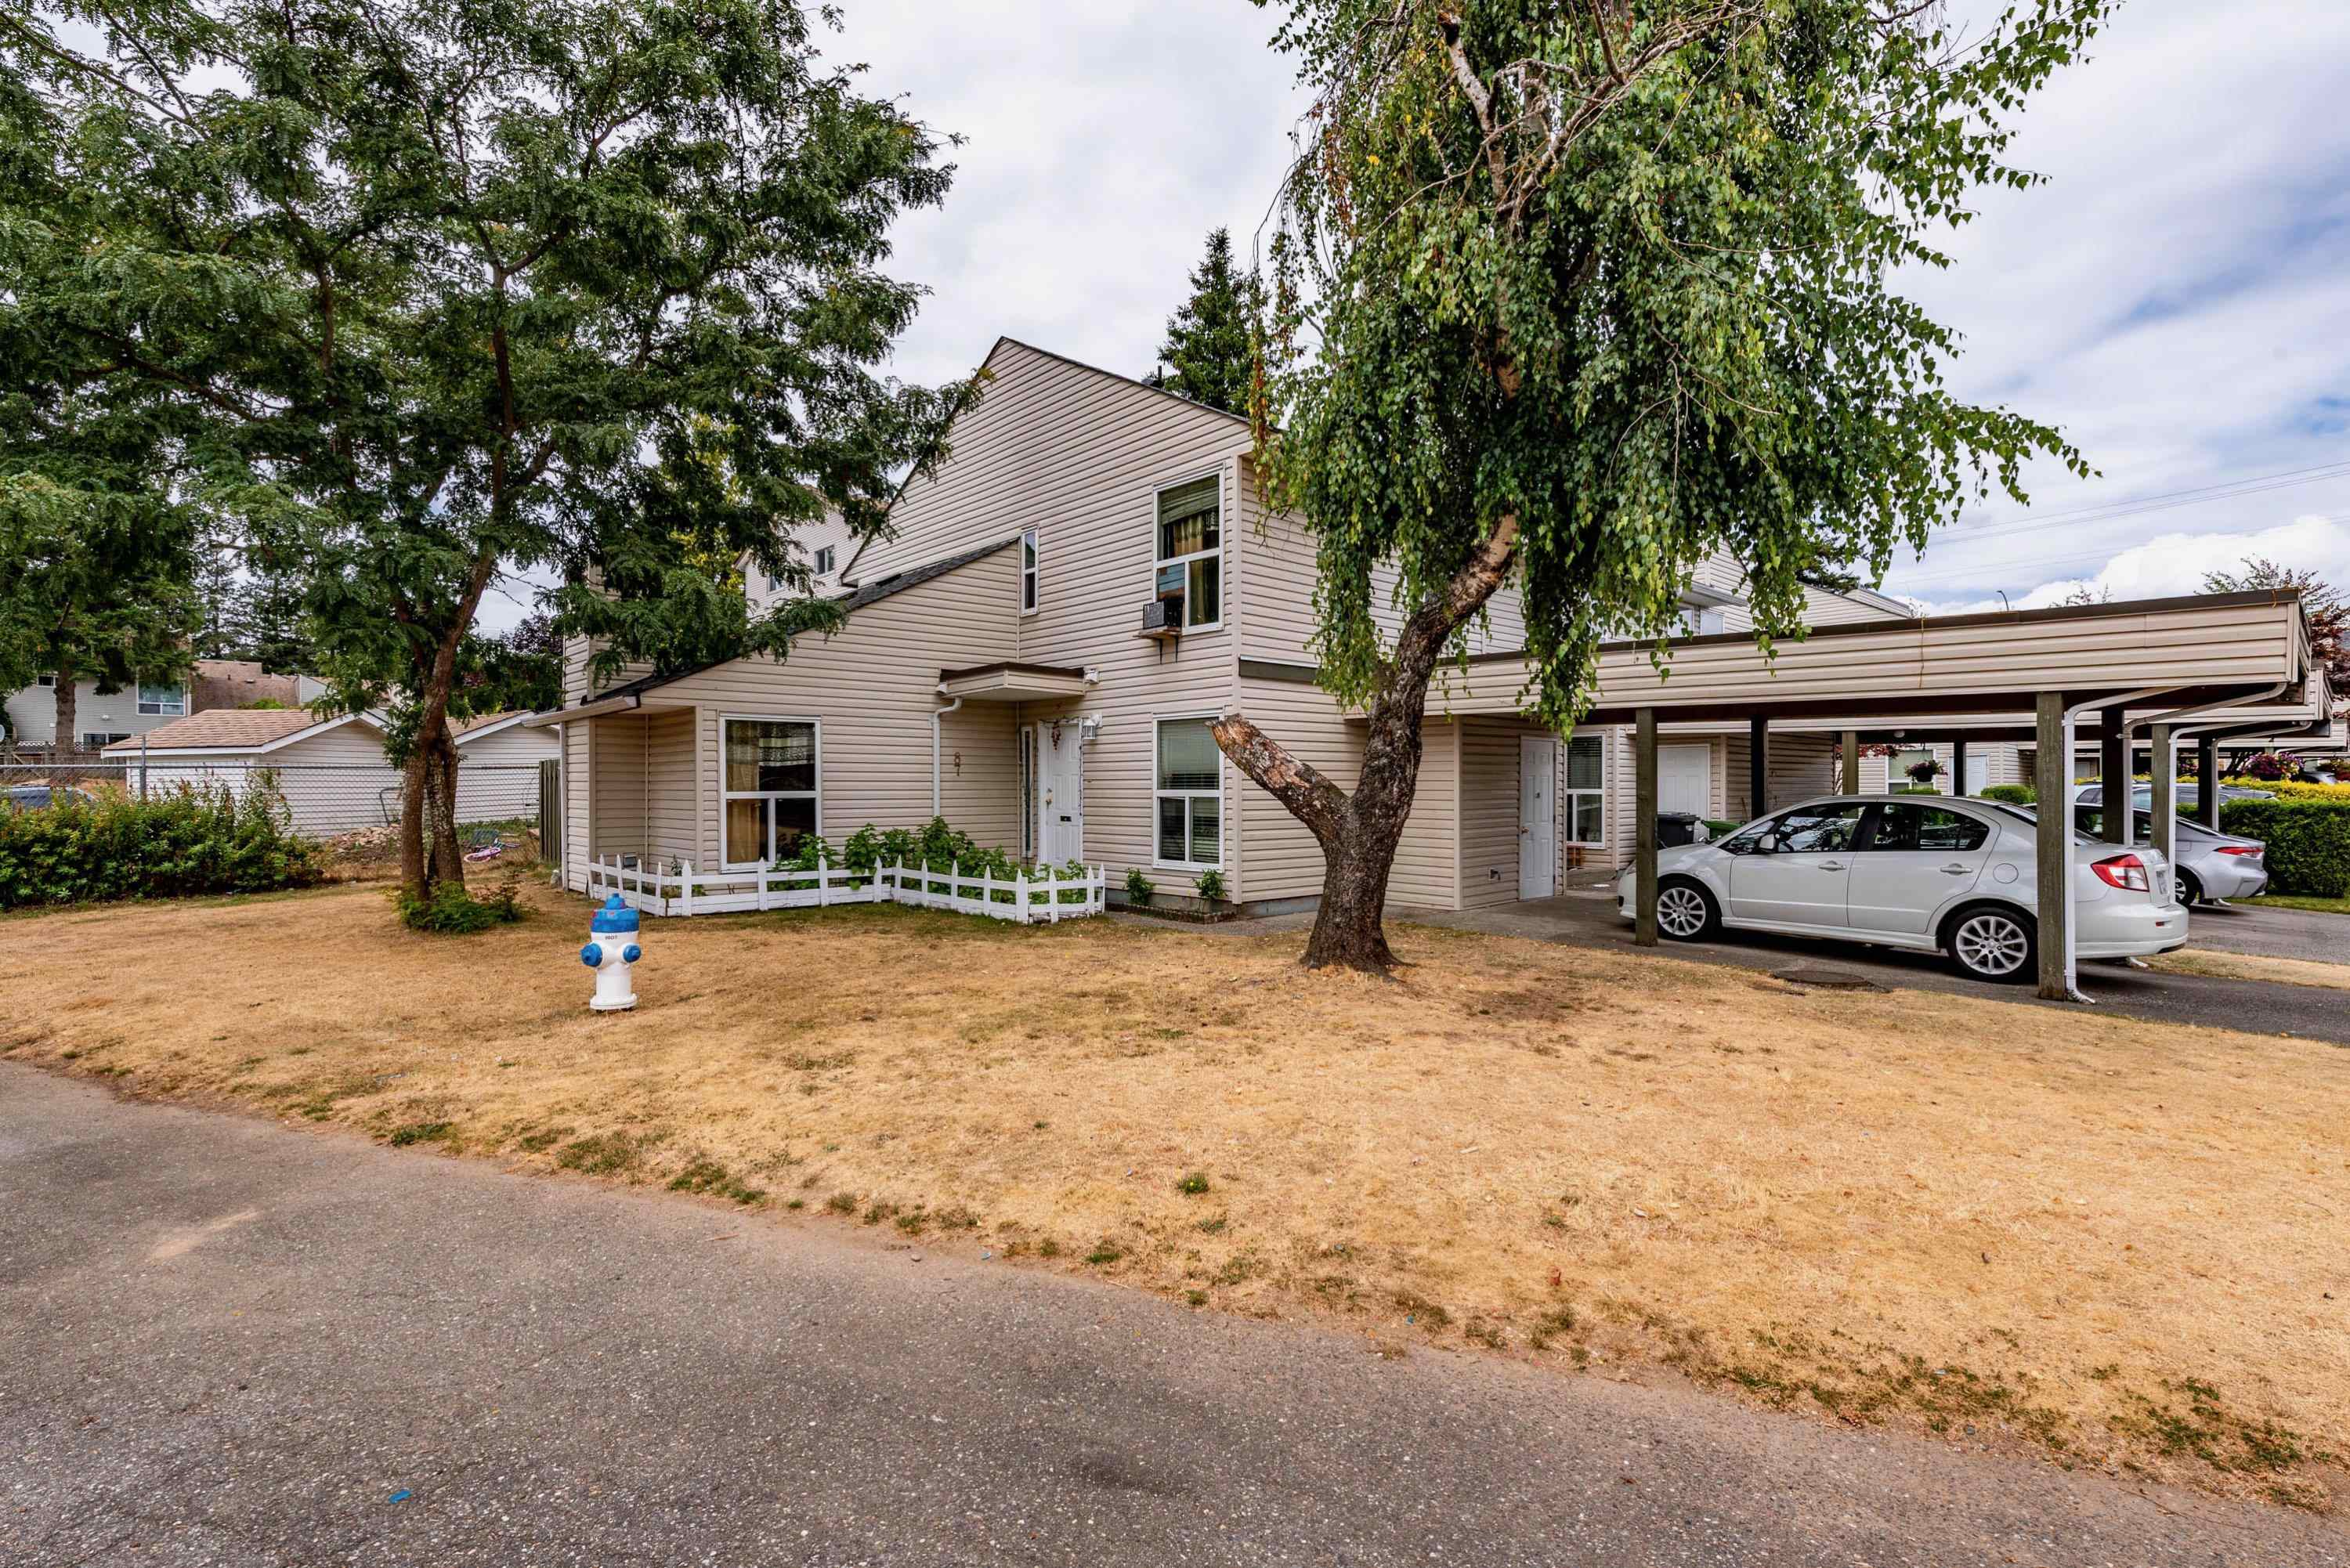 87 3030 TRETHEWEY STREET - Abbotsford West Townhouse for sale, 3 Bedrooms (R2625397) - #1